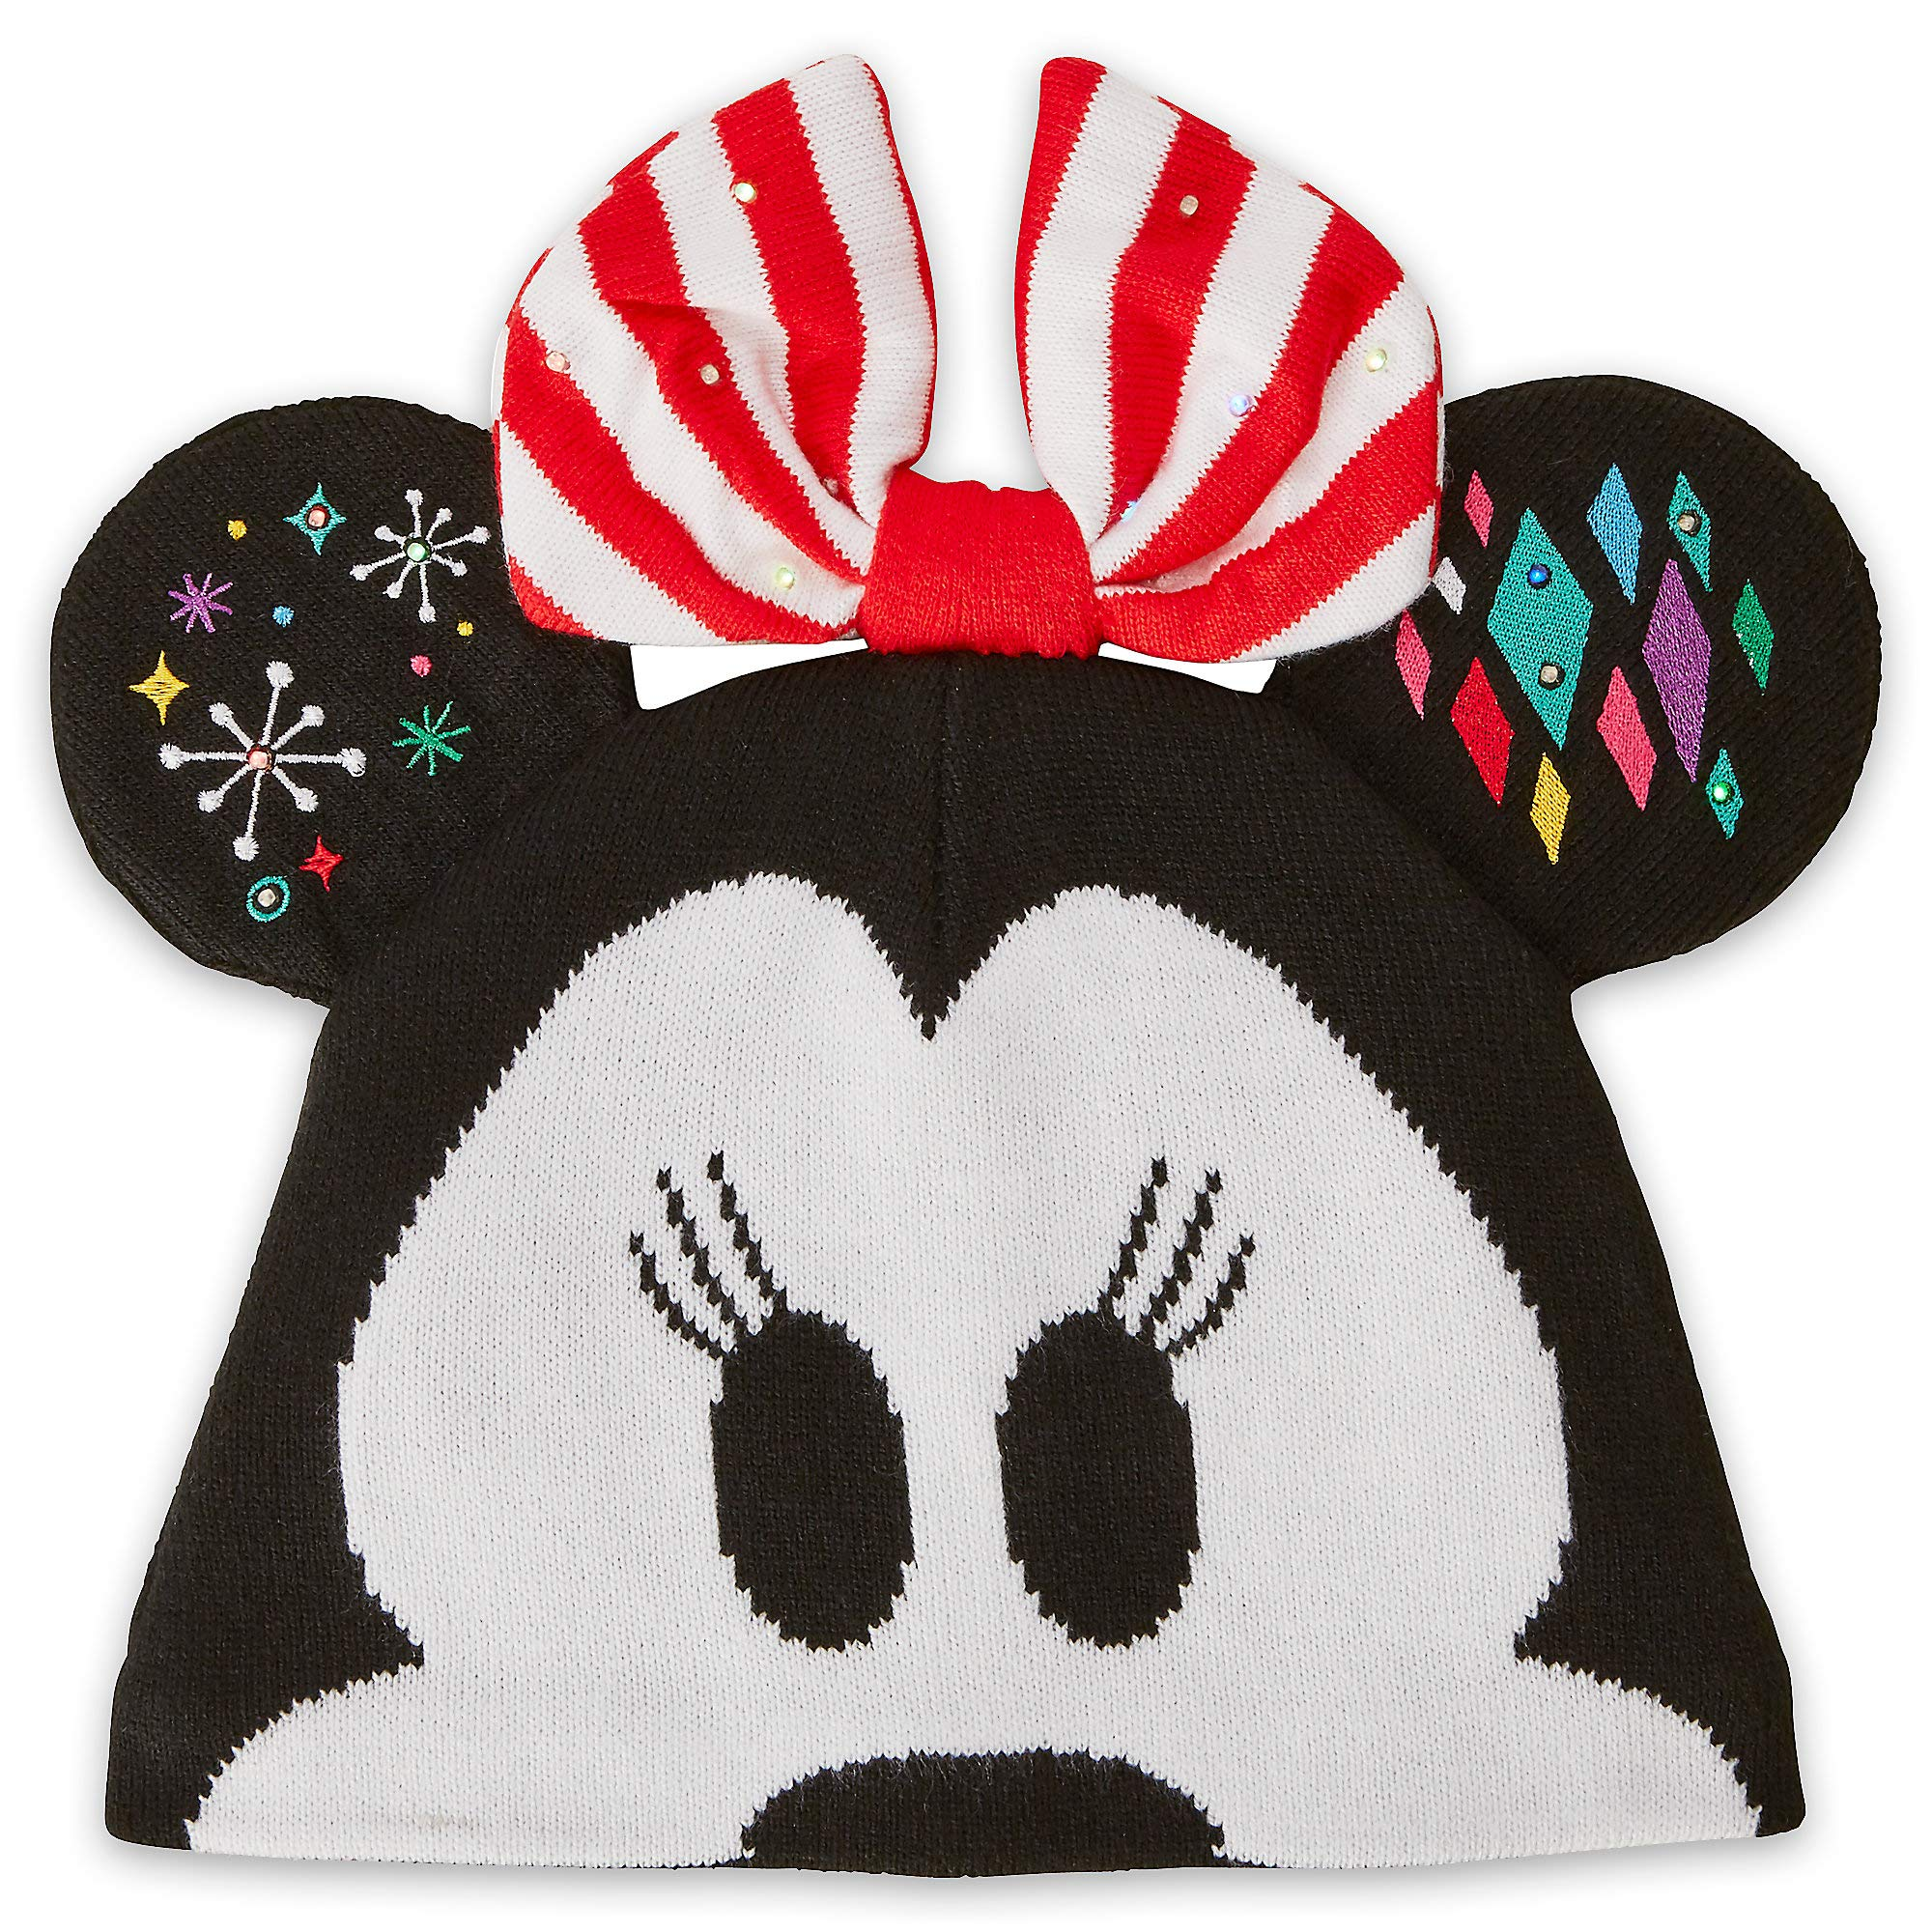 Disney Minnie Mouse Knit Hat for Adults